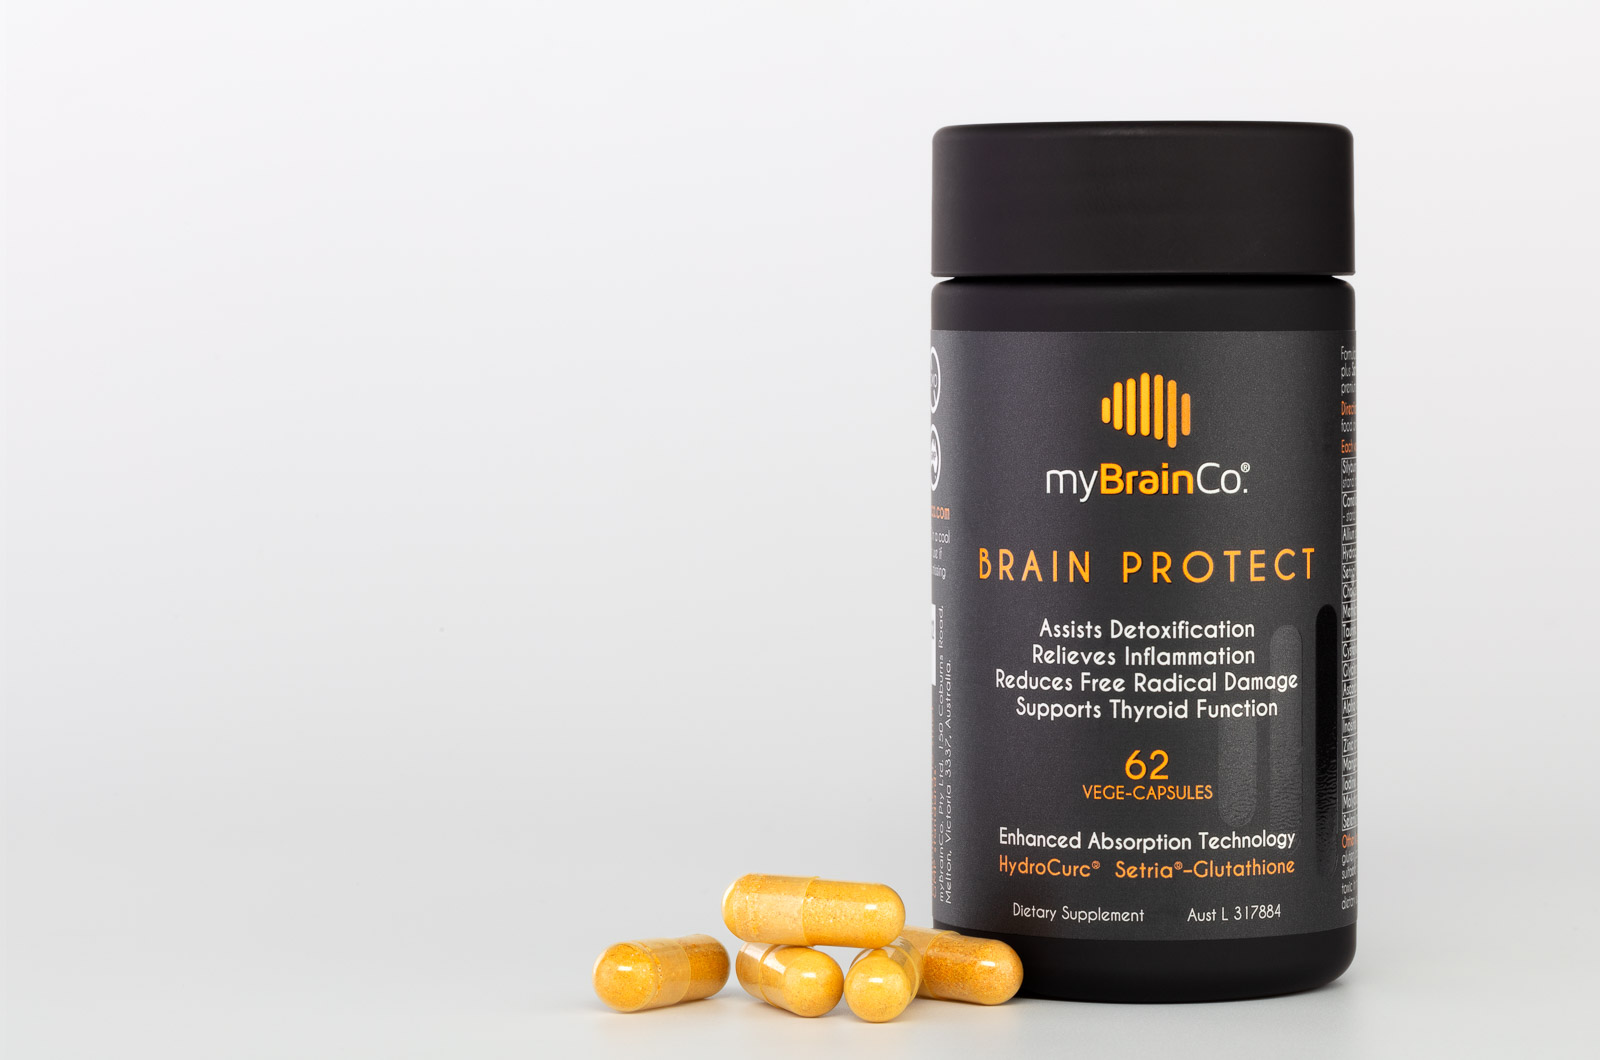 MyBrainCo BrainProtect with pills on side